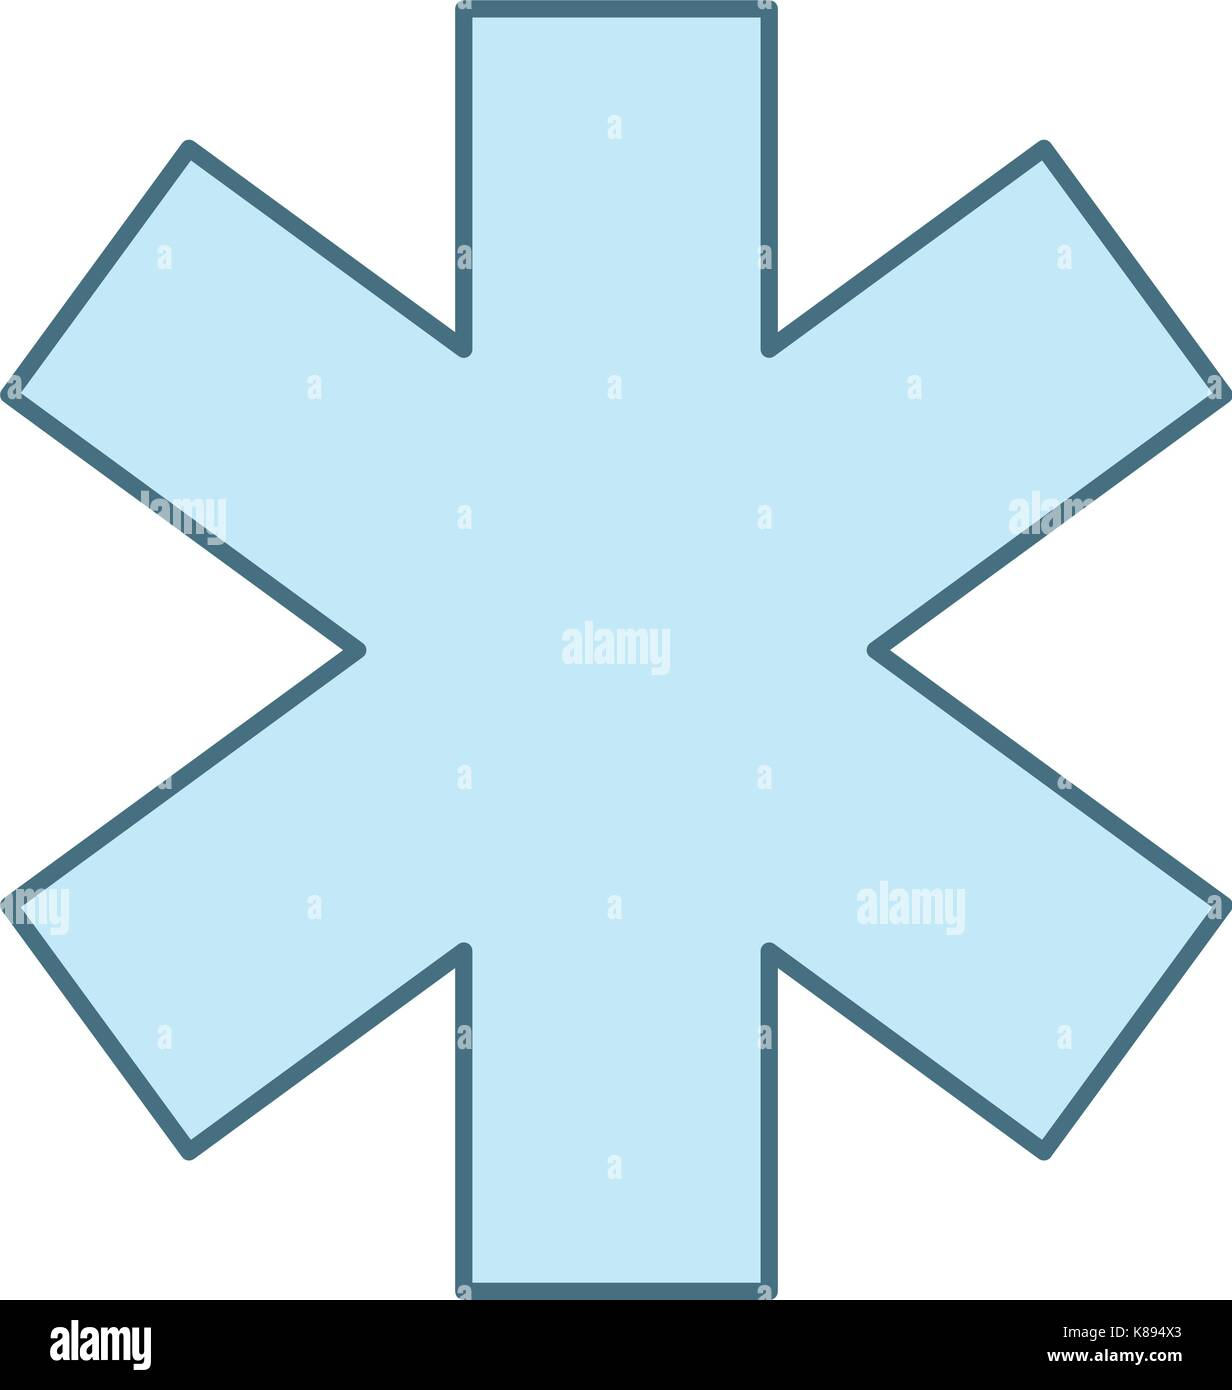 cross medical isolated icon - Stock Image